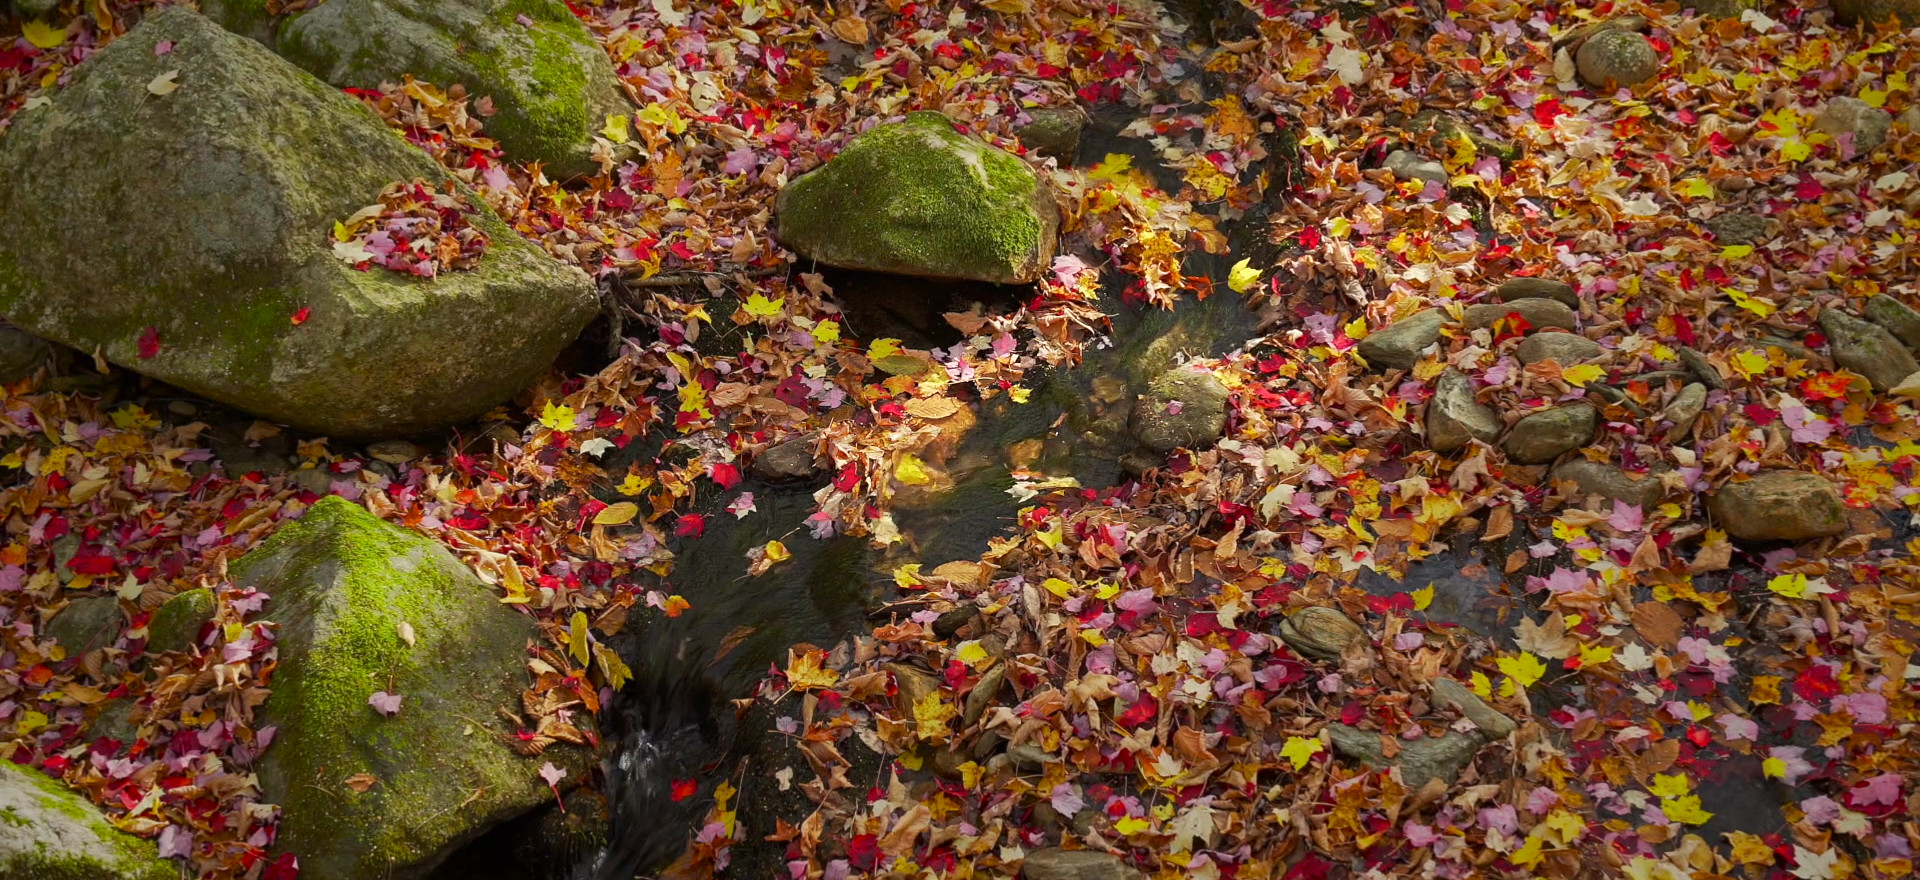 By Autumn's Light, Tannery Brook, Savoy State Forest, The Berkshires, Massachusetts